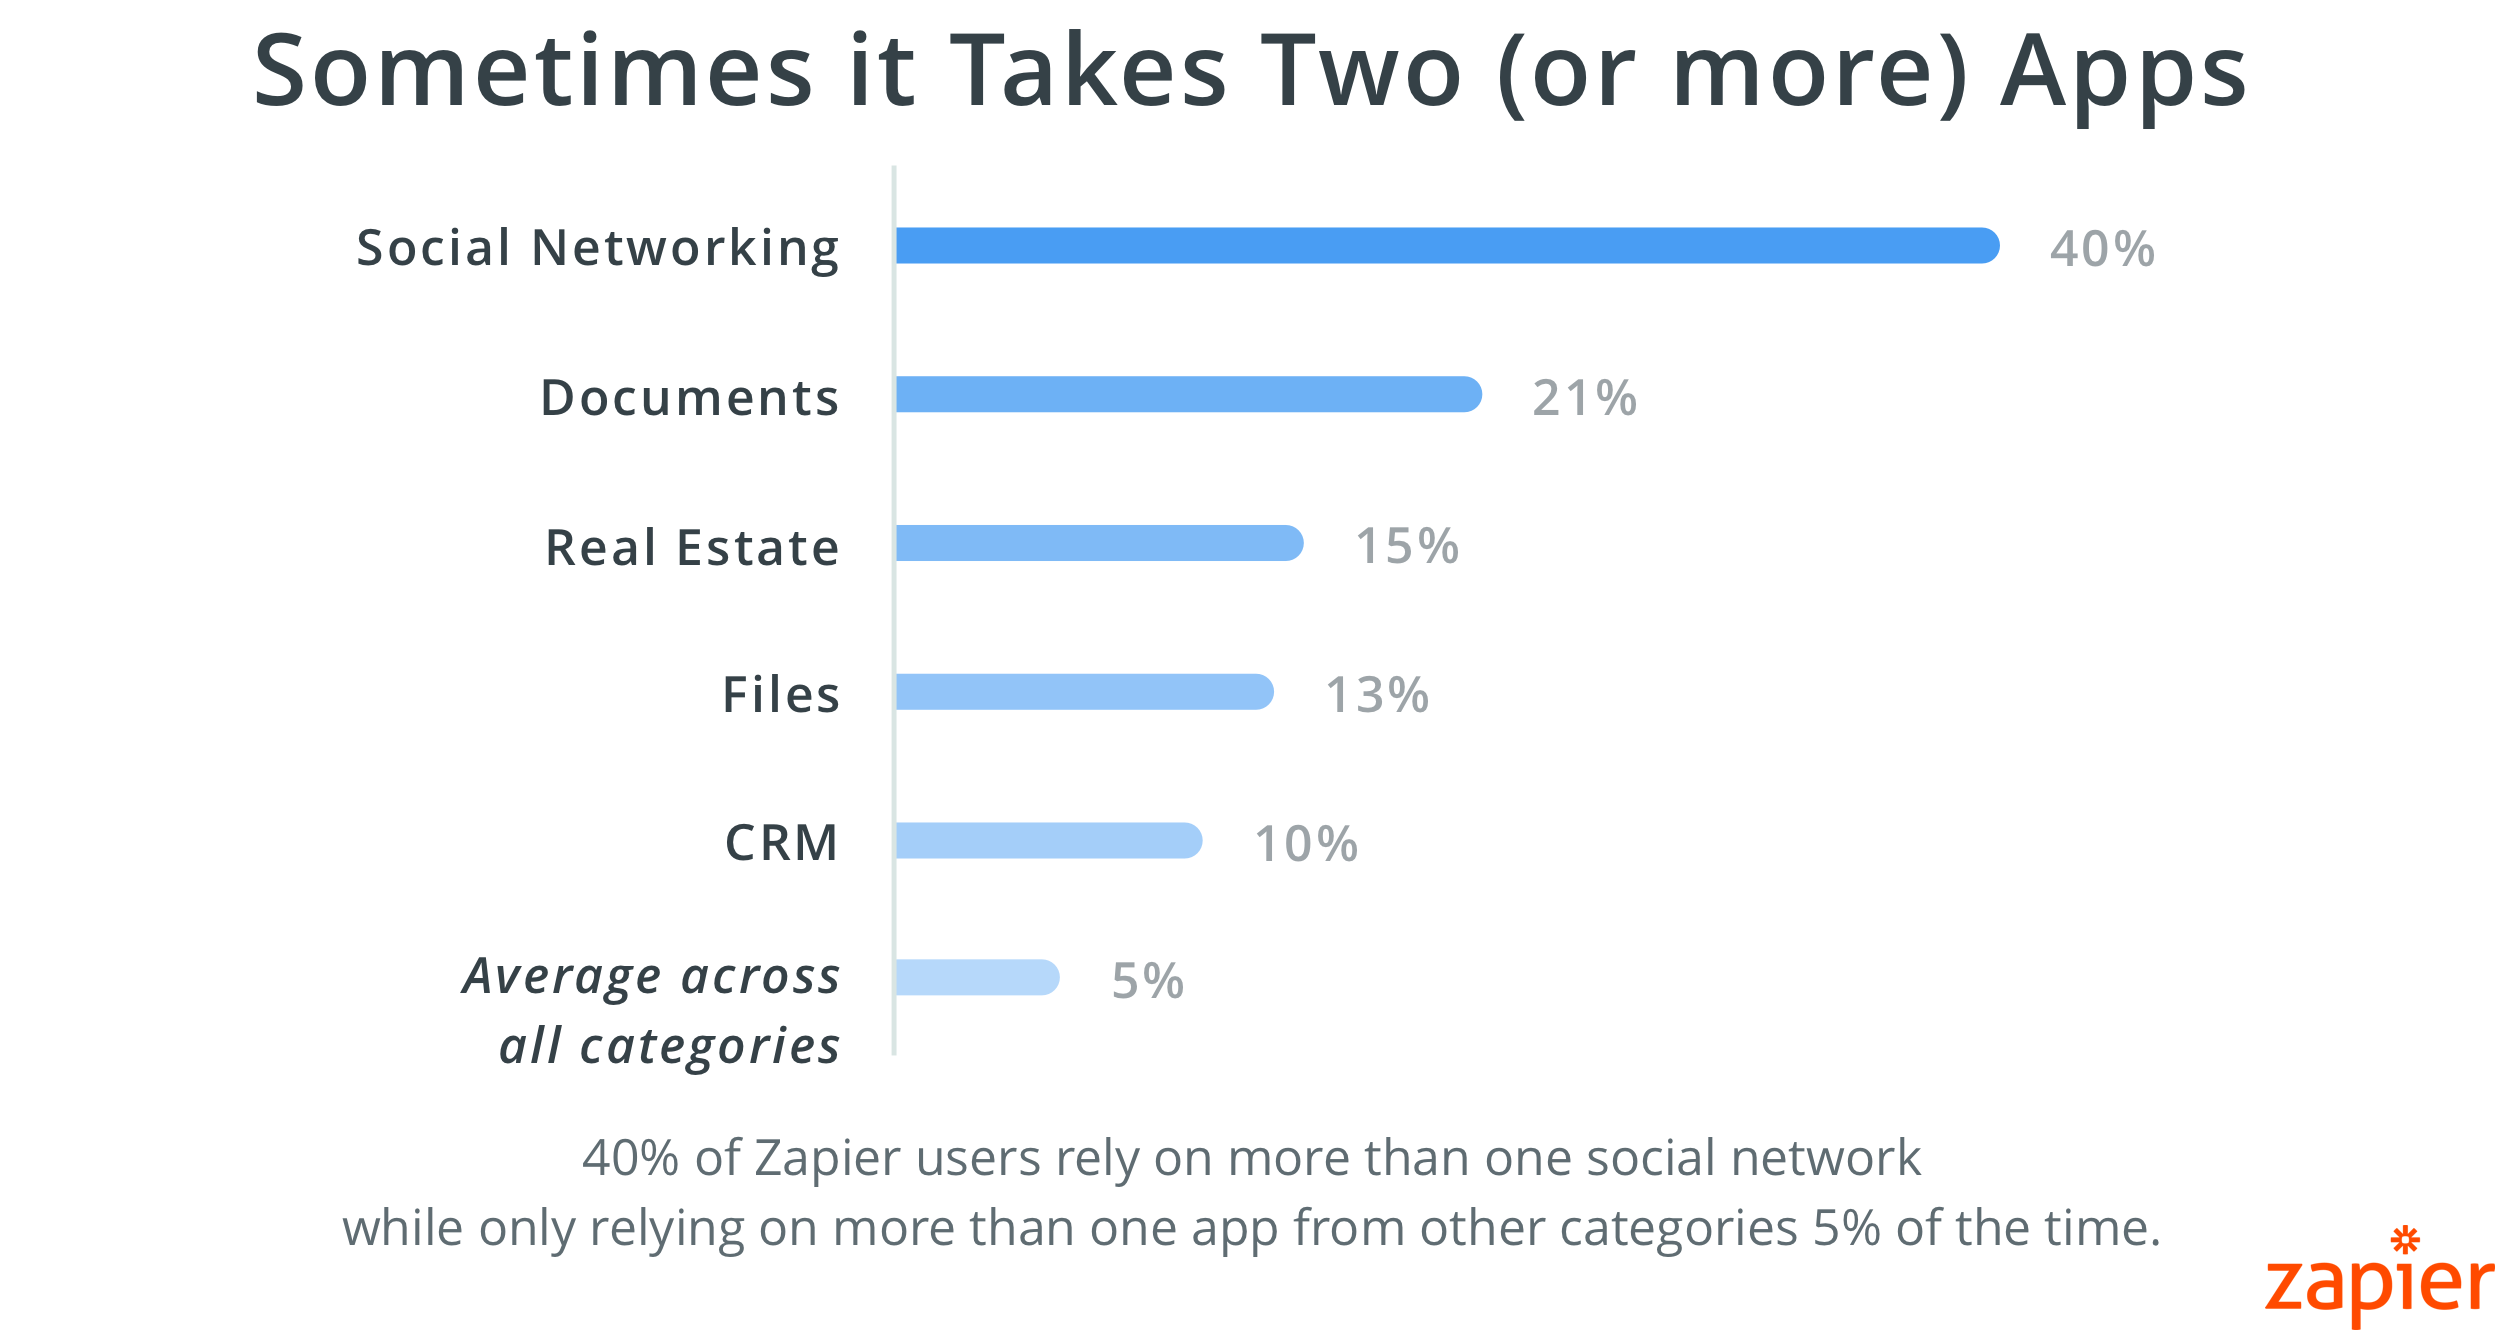 40% of Zapier users rely on 2 or more social networks